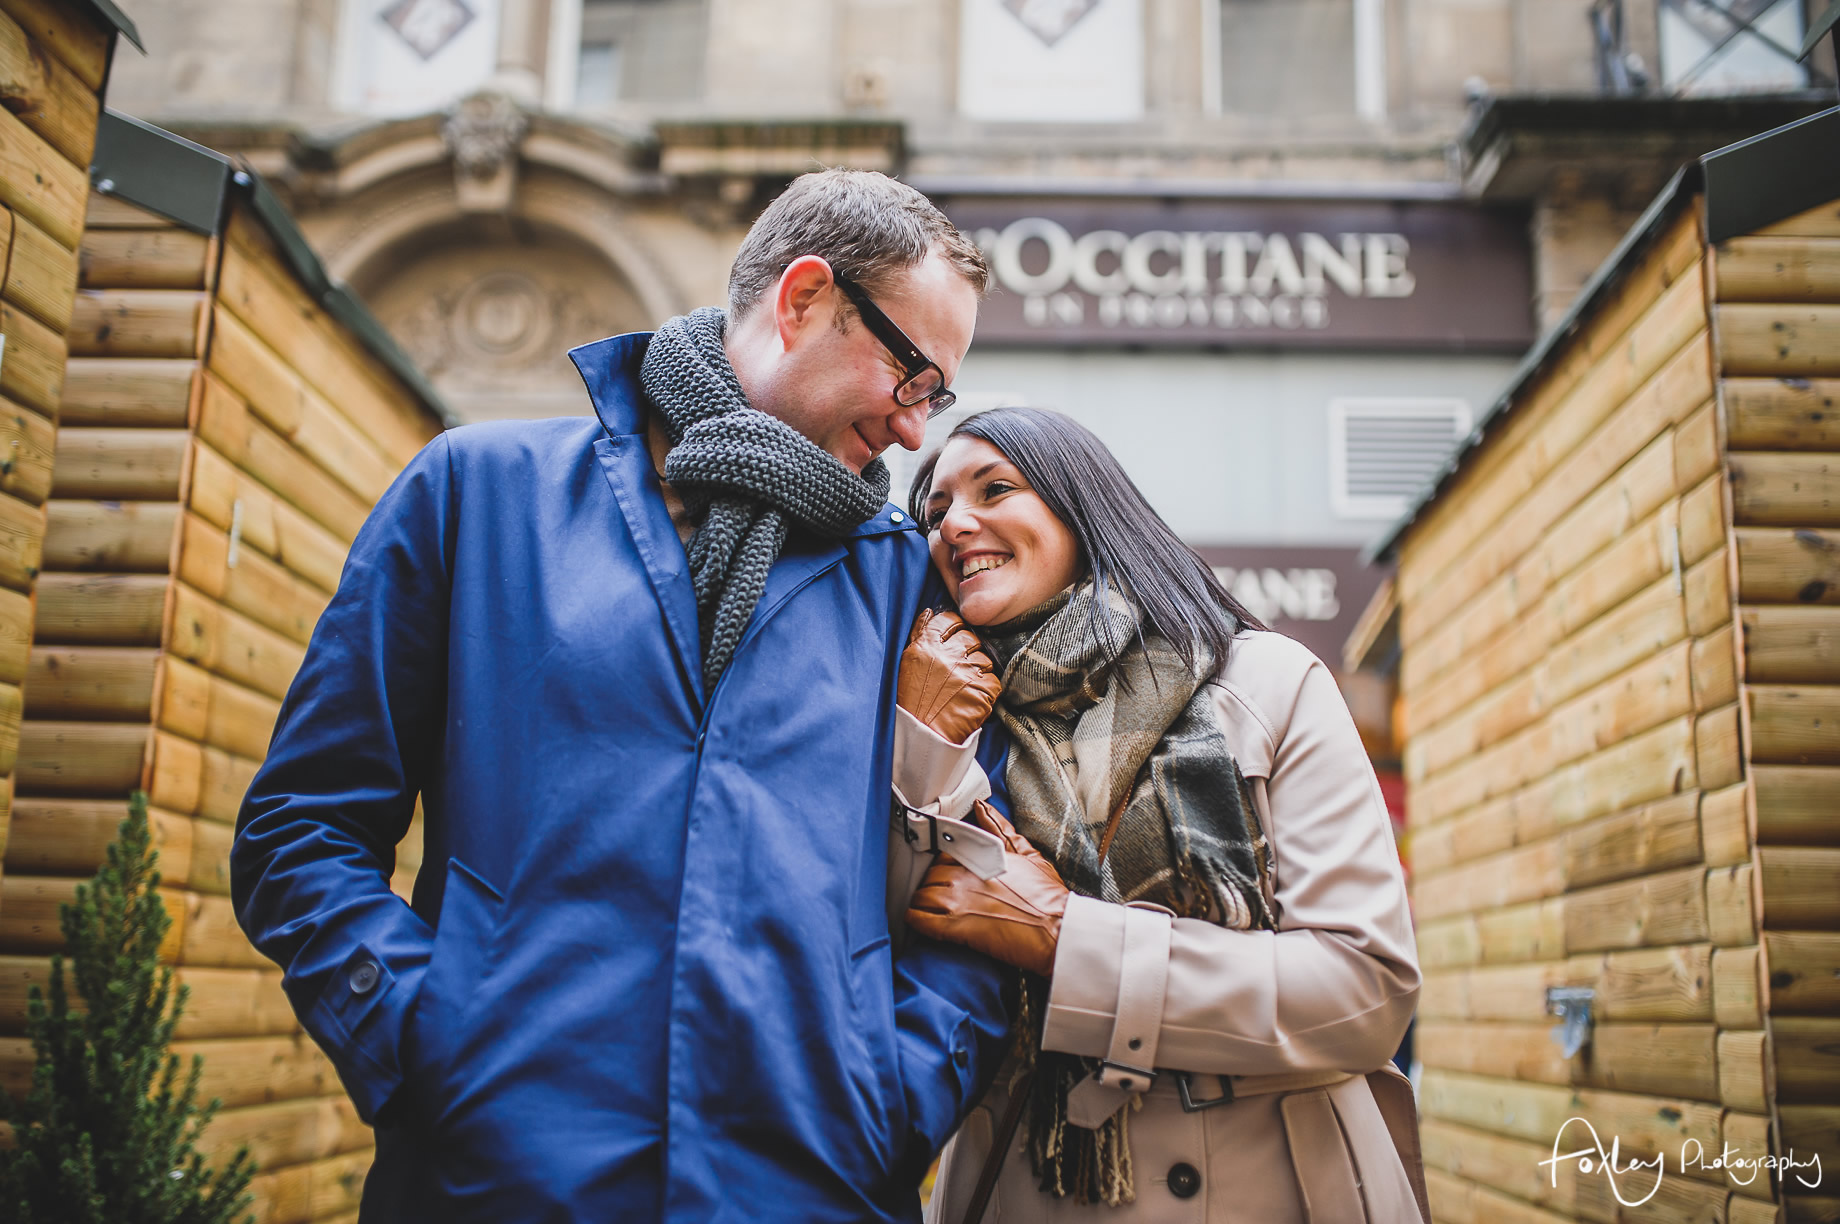 Angela and Andrew's Pre-Wedding Shoot at Manchester Christmas Markets 019